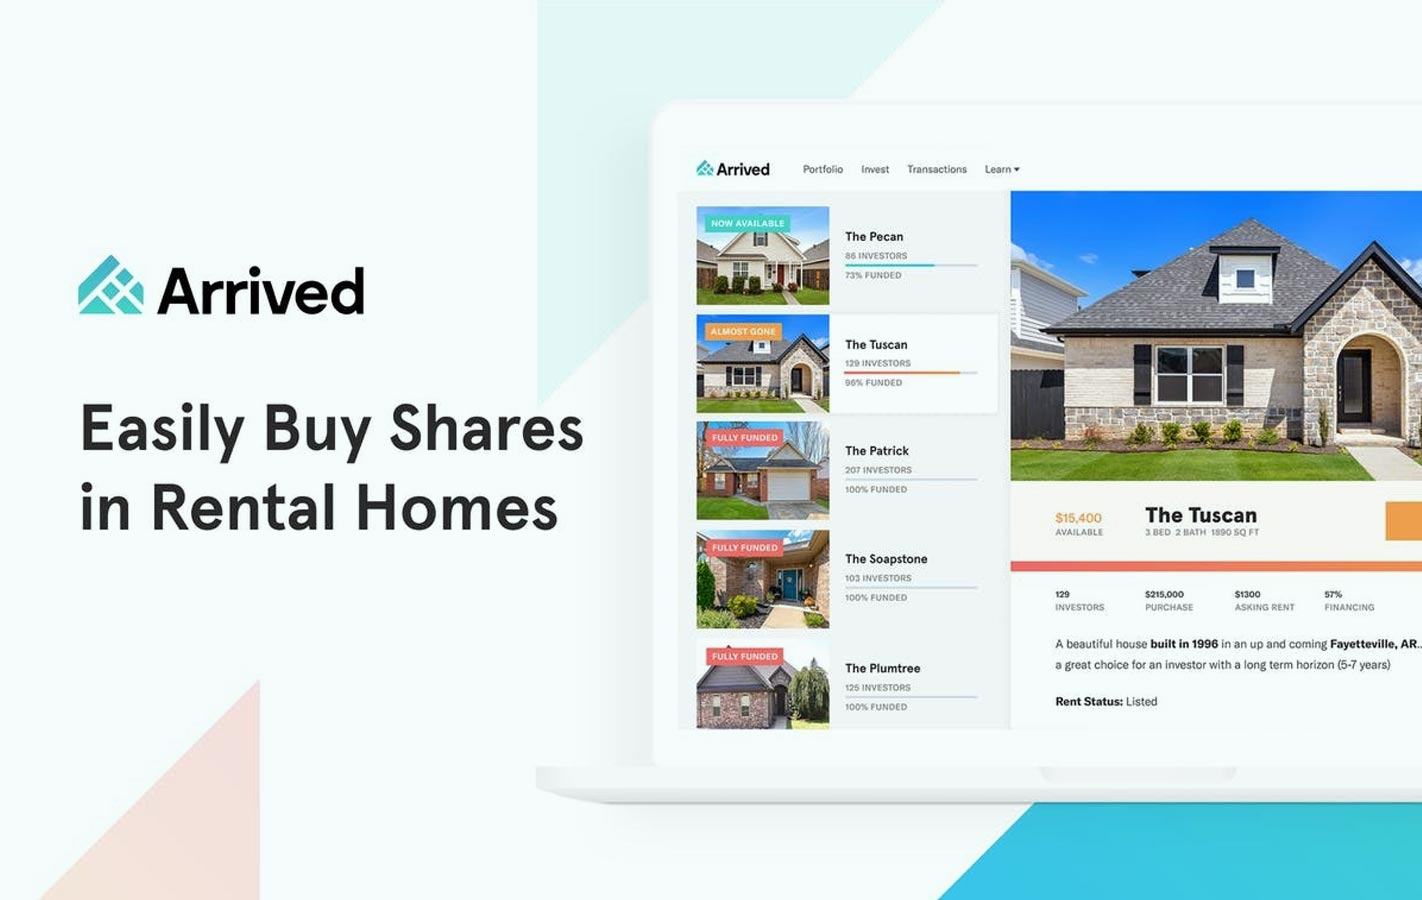 Arrived homes easily buy shares in rental homes